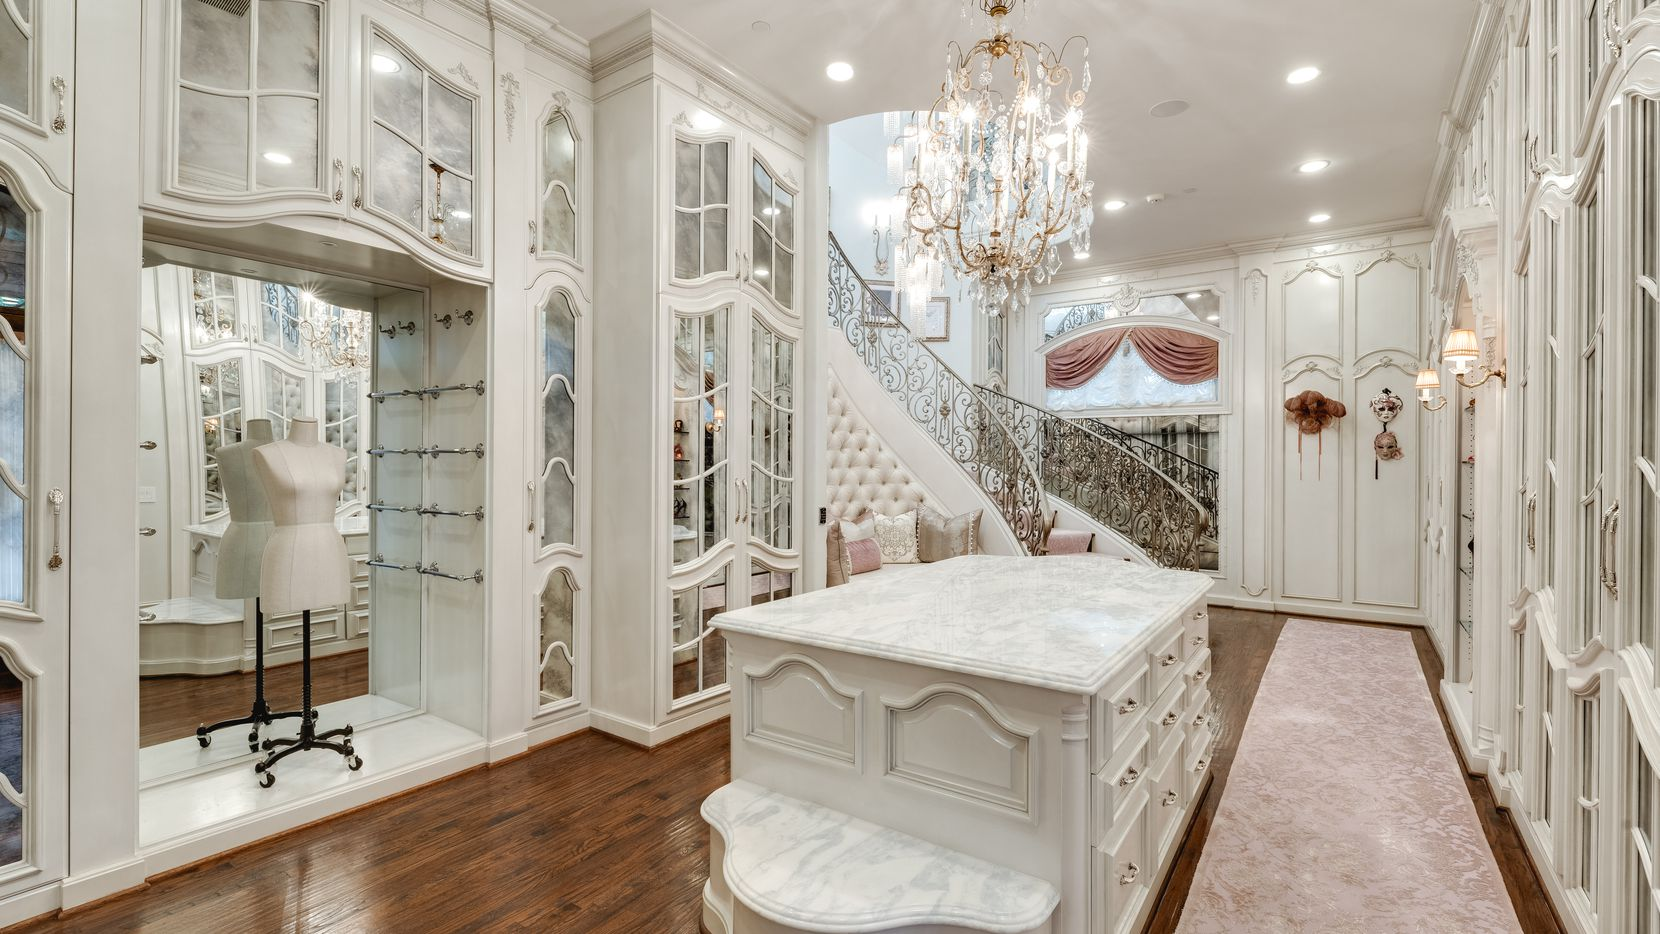 A look at the closet at 4555 Harrys Lane in Dallas.